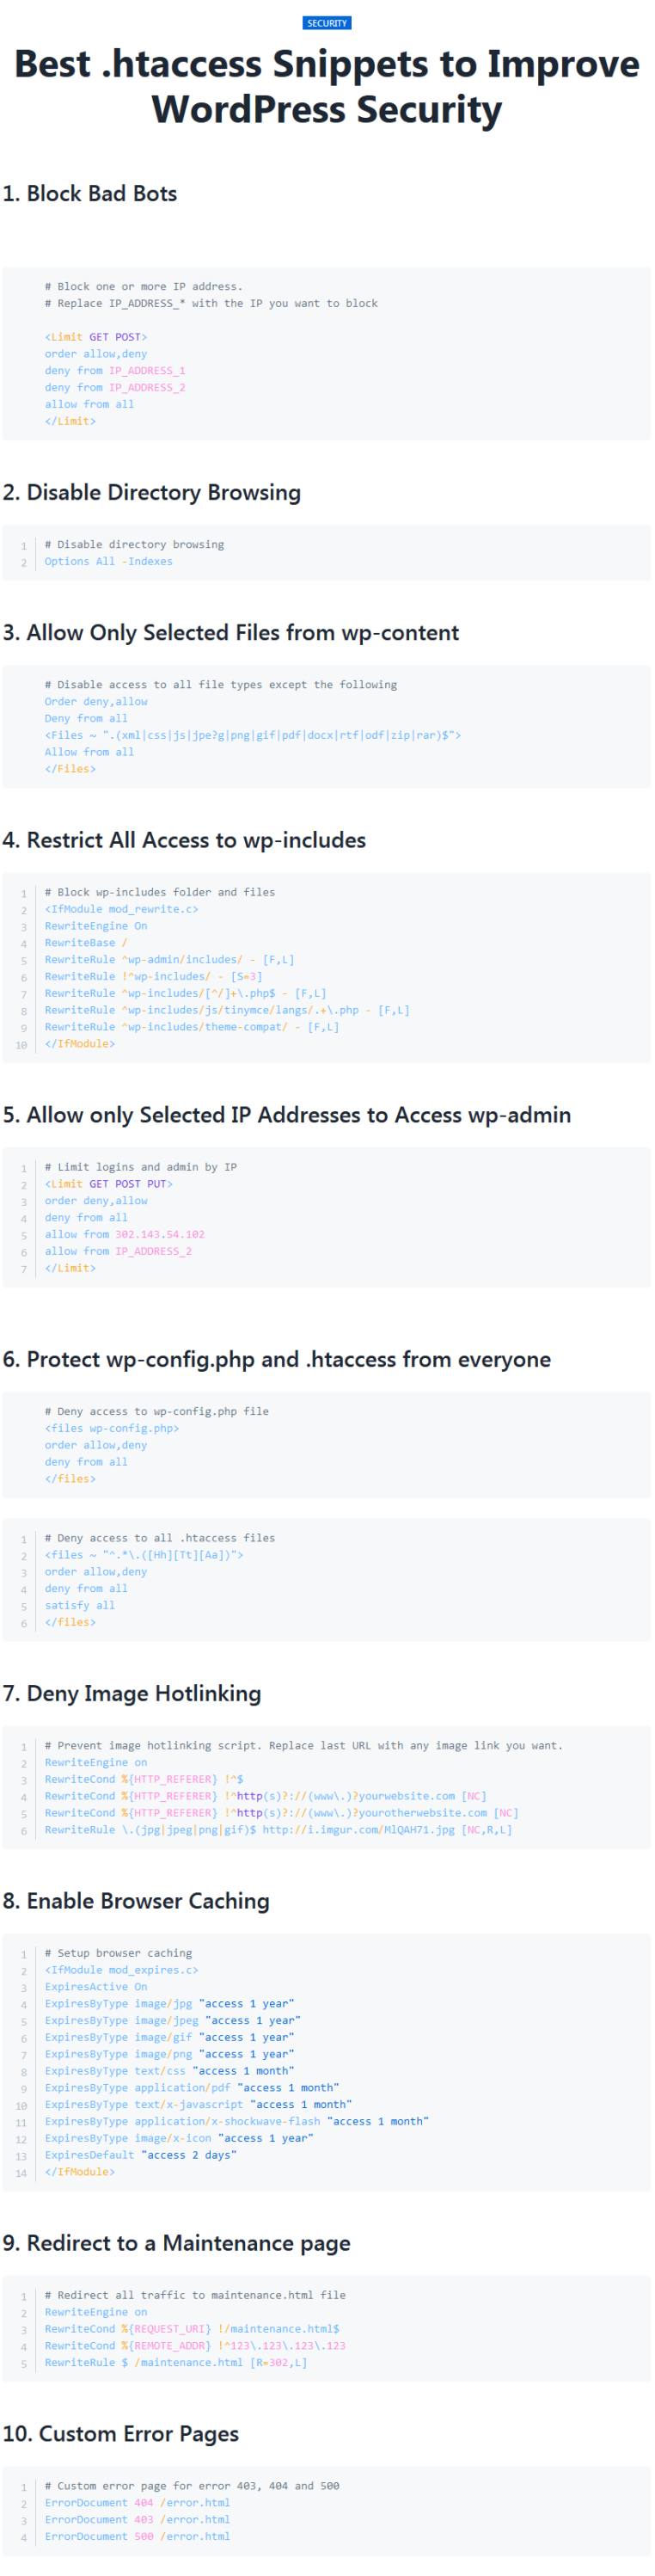 Make WordPress website secure with .htaccess snippets